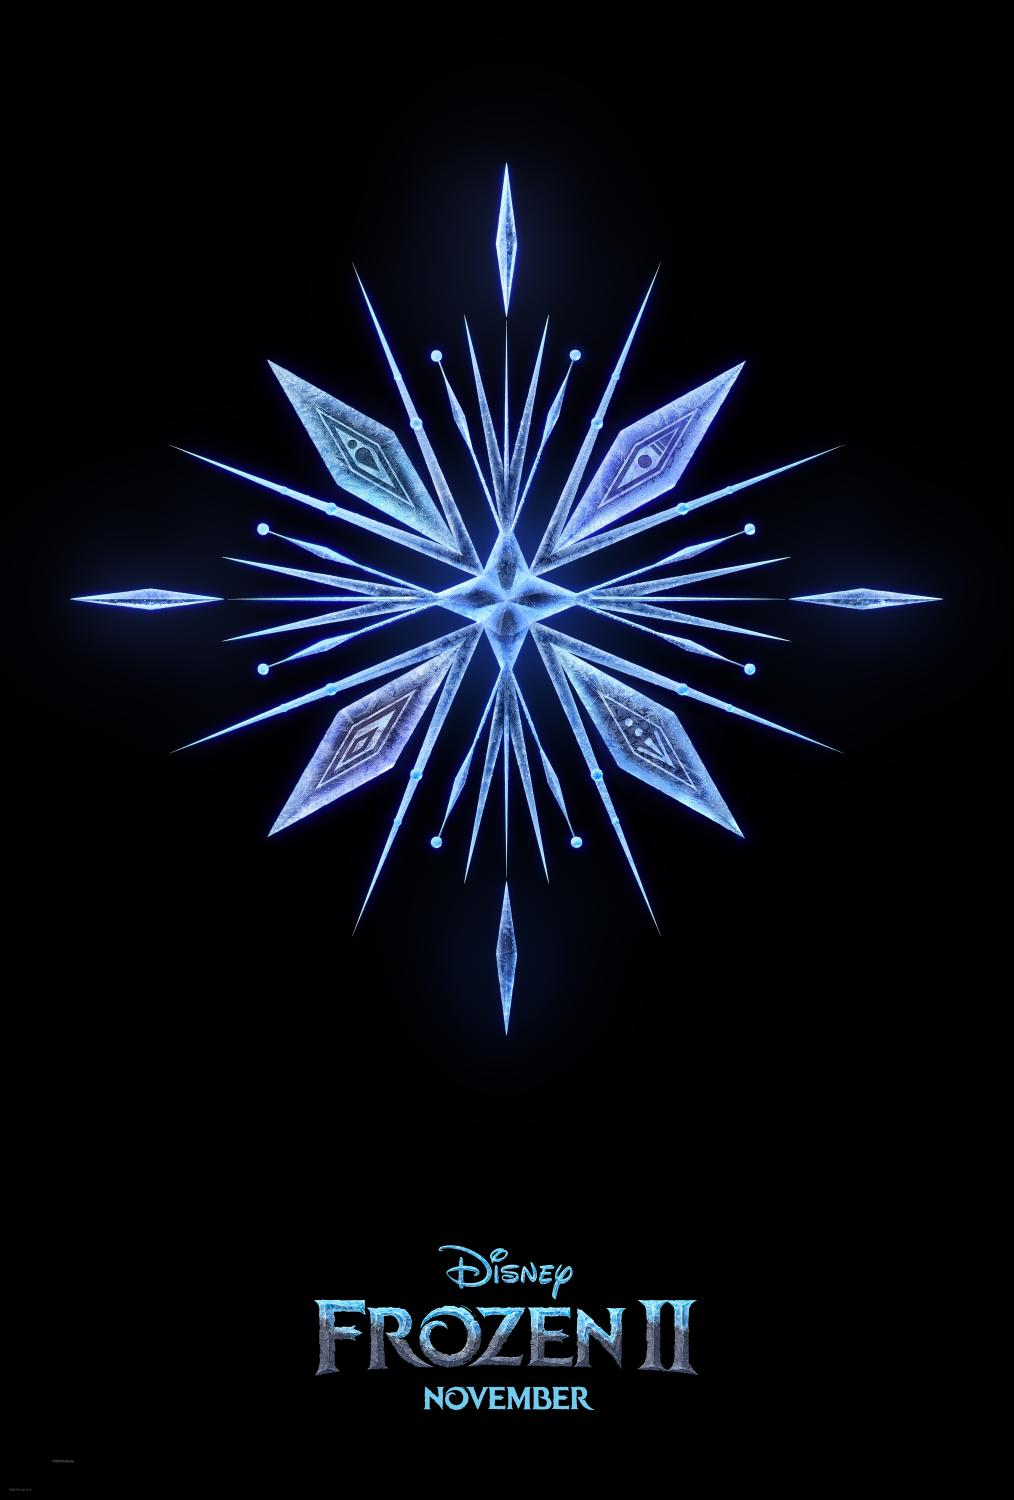 First Look at Disney's Frozen 2 Teaser Movie Trailer